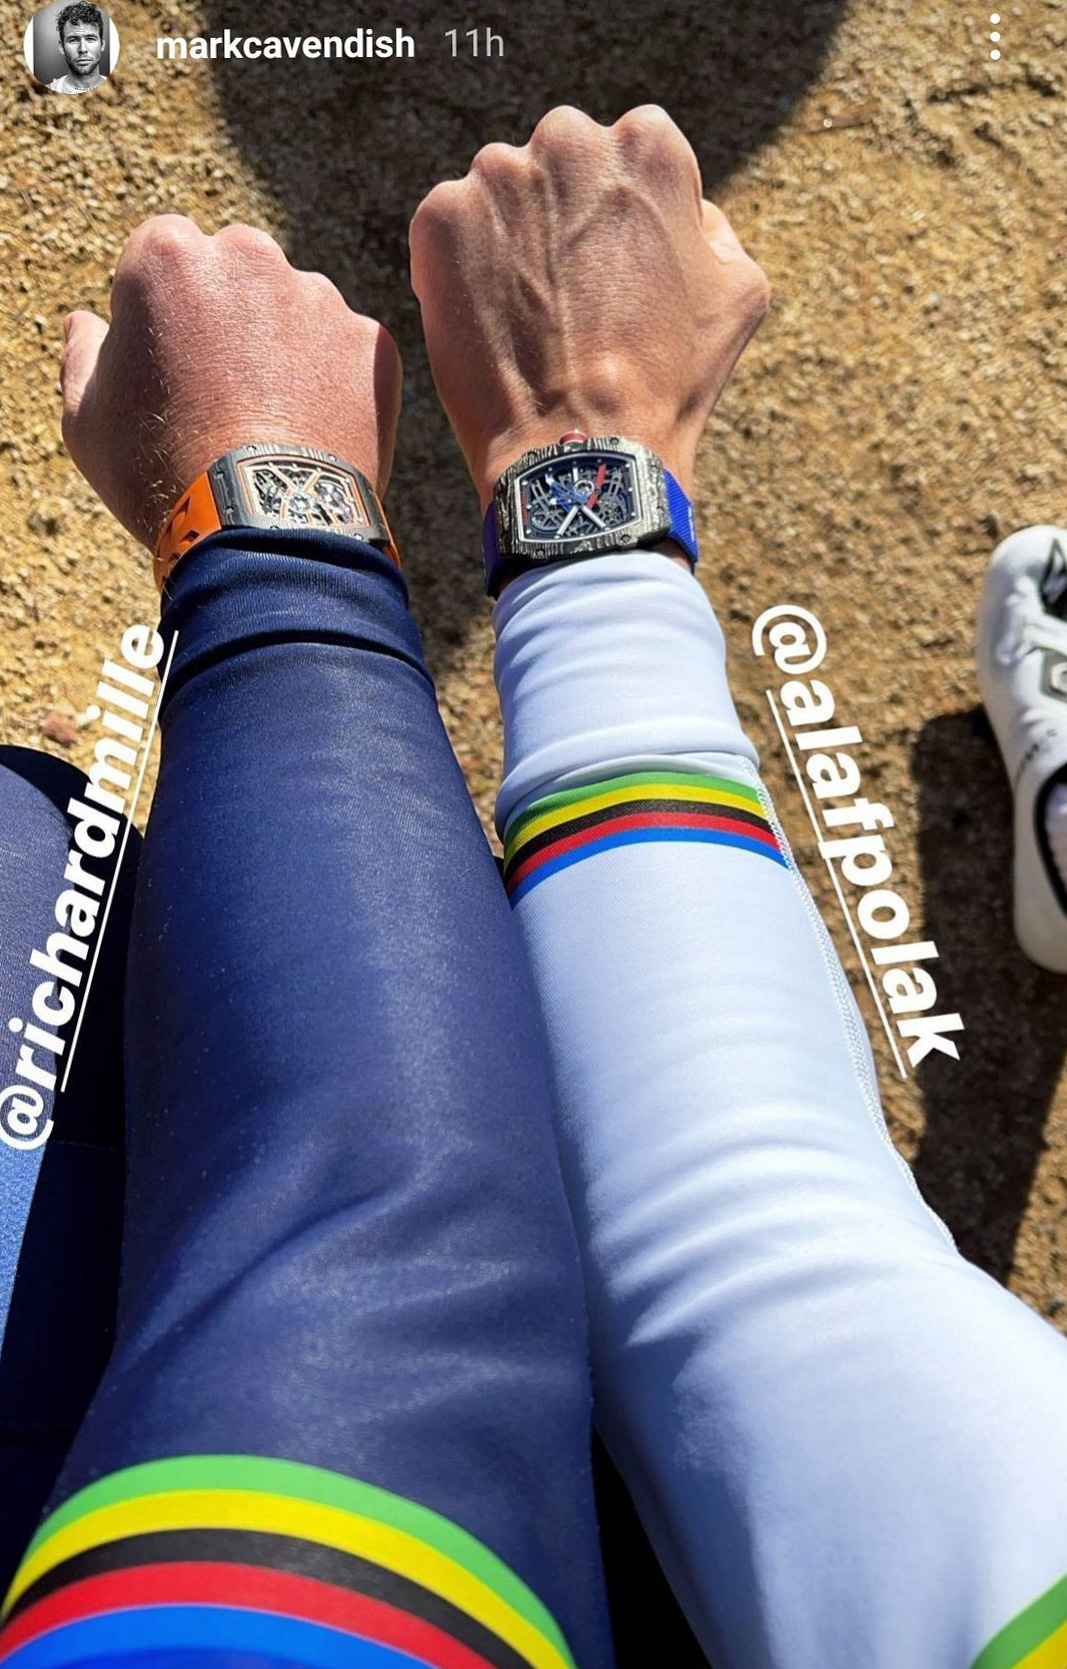 Cavendish and Alaphilippe watches 1